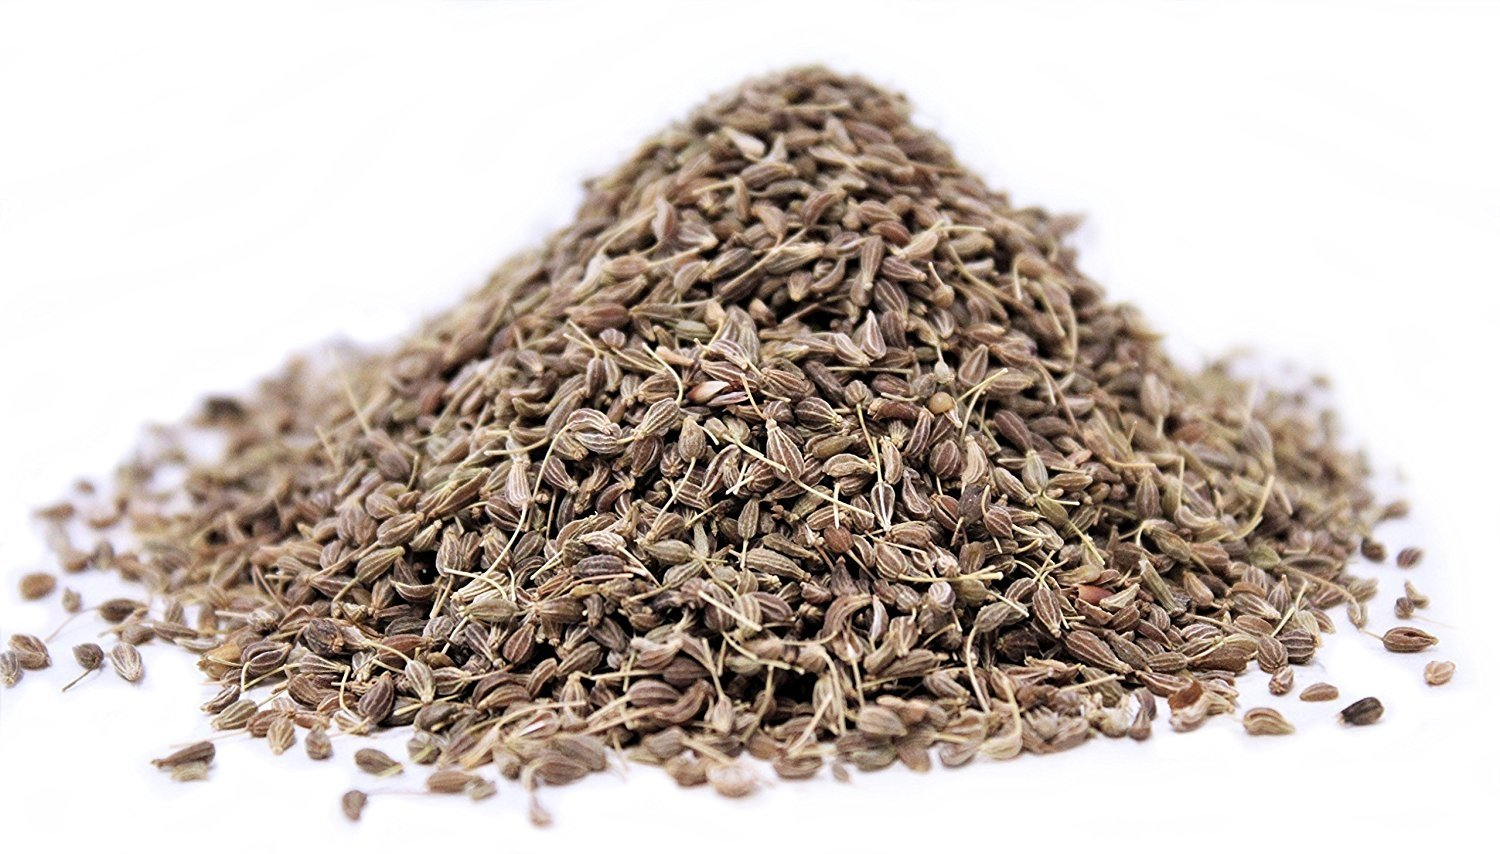 Whole Anise Seeds